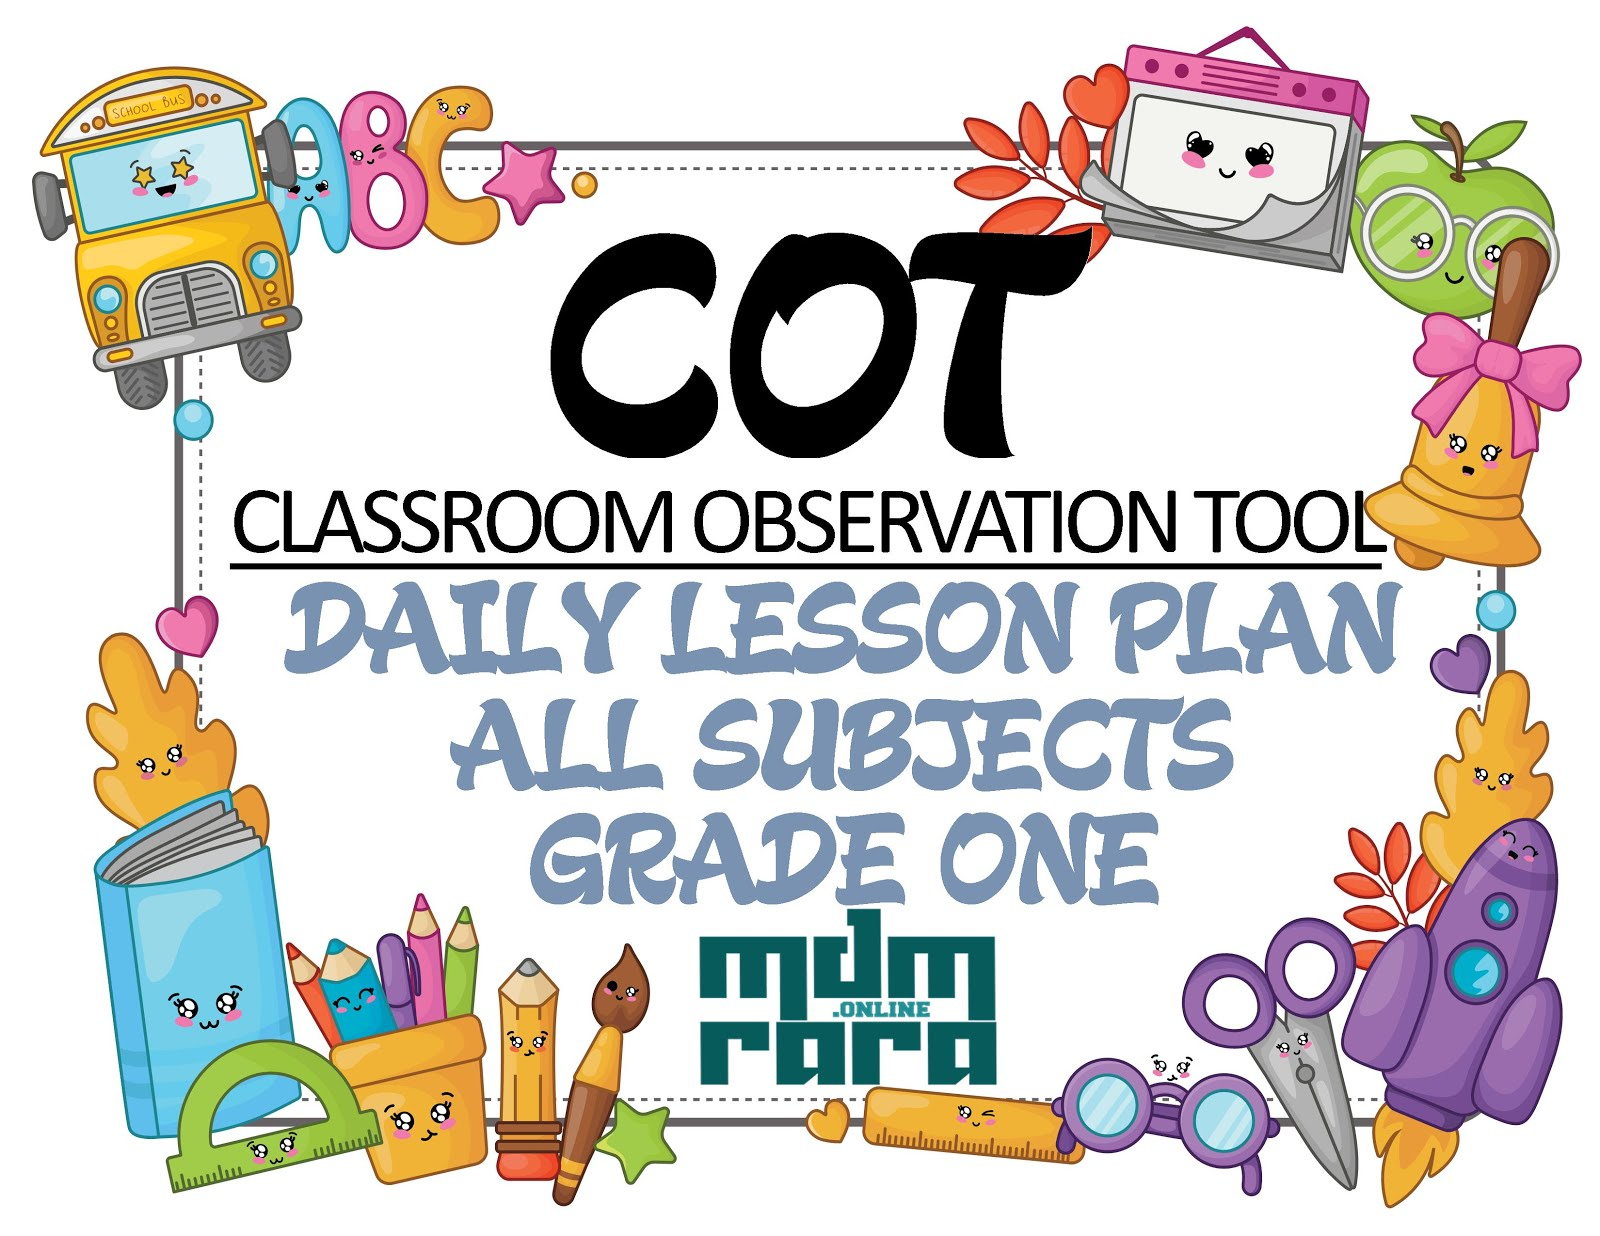 medium resolution of CLASSROOM OBSERVATION TOOL (COT) DAILY LESSON PLAN (DLP) GRADE ONE - mdmrara